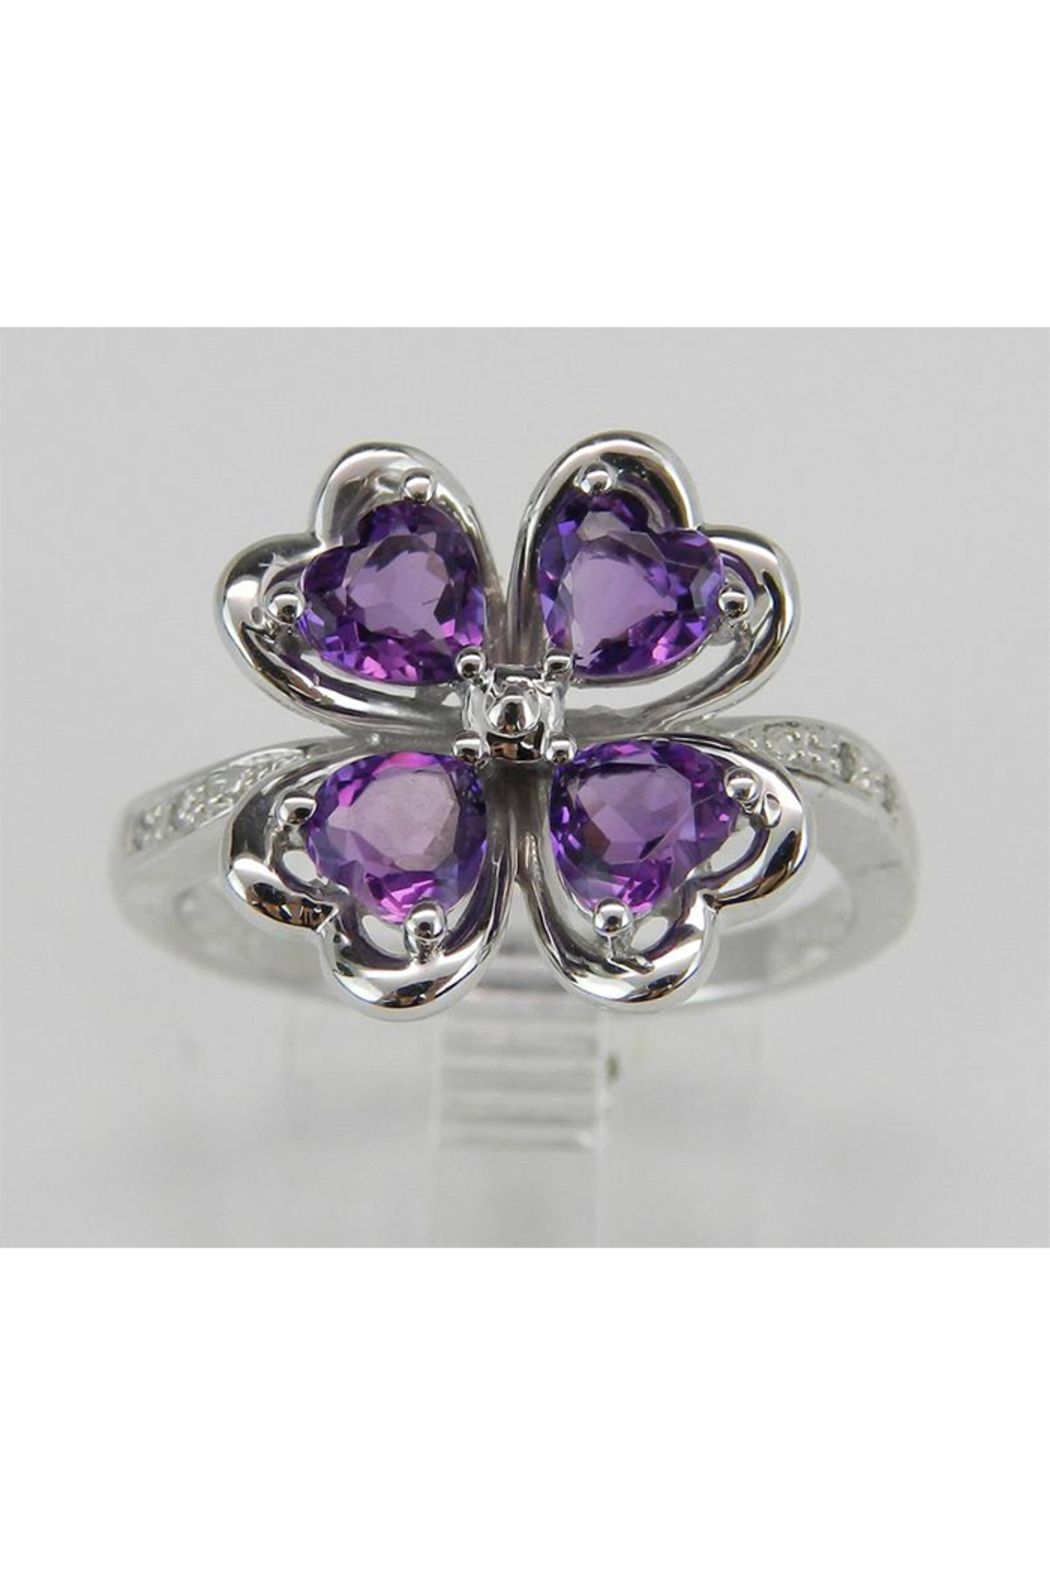 Margolin & Co Amethyst an Diamond Ring, Heart Amethyst in Clover Design with Diamond Cocktail Ring in White Gold Size 8 February Gem - Main Image